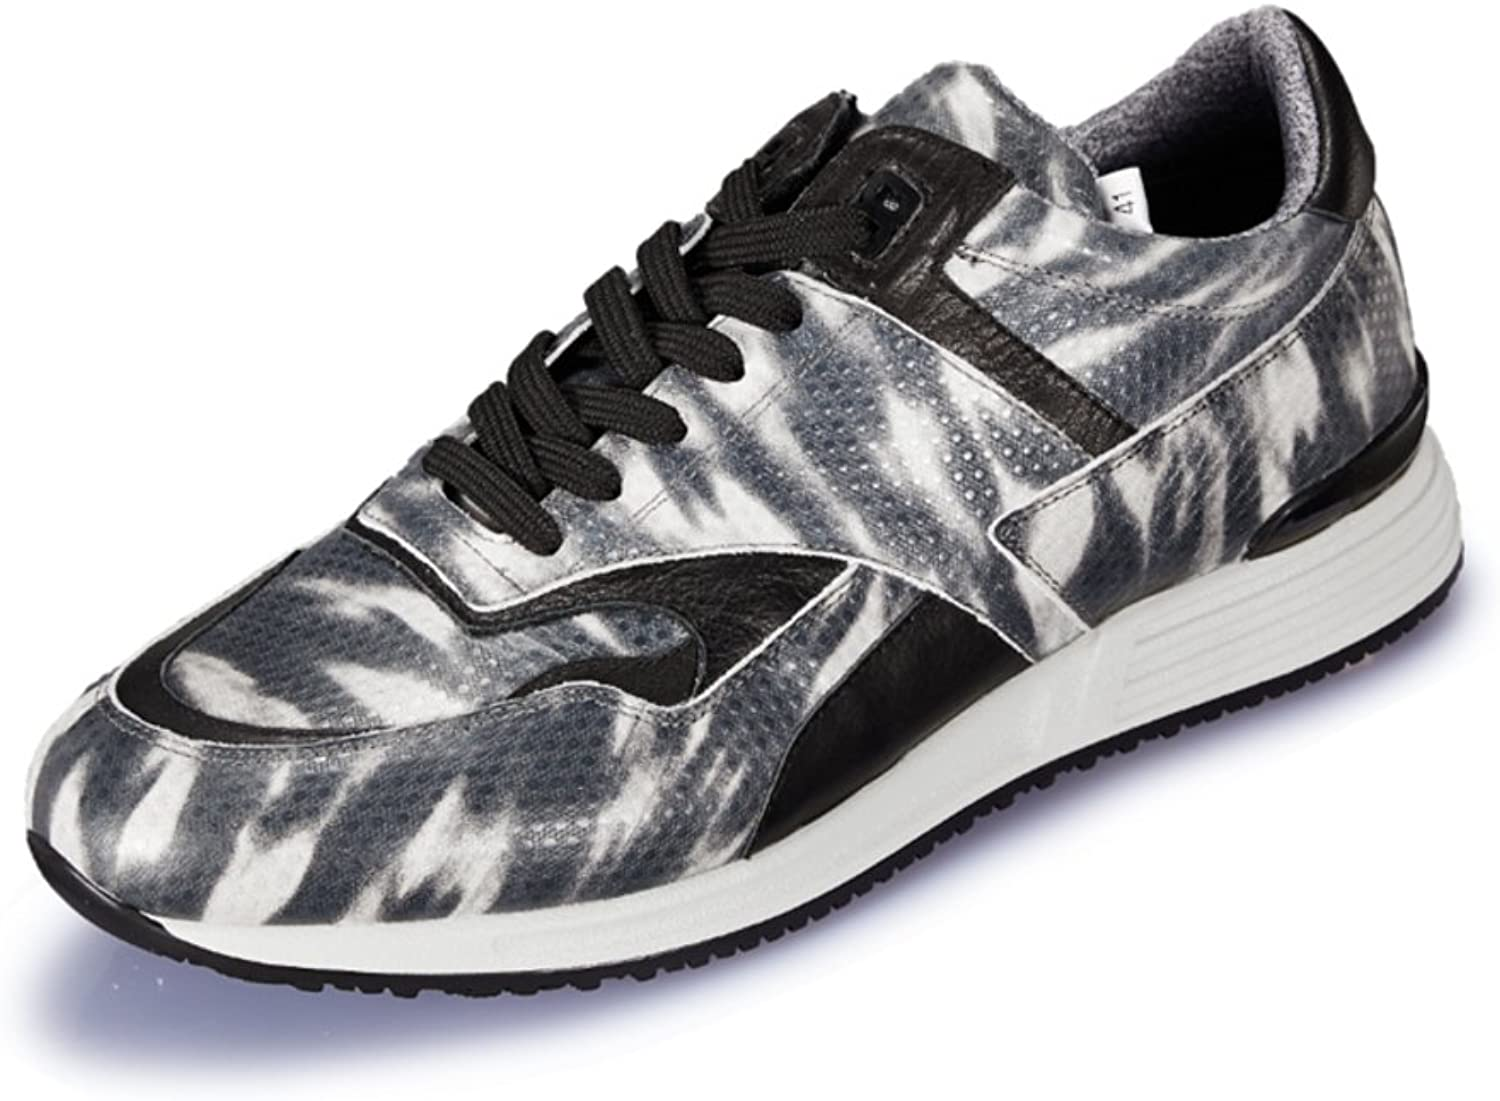 WLJSLLZYQ Autumn and Winter Sports shoes Outdoor Leisure shoes Camo Athletic shoes of England